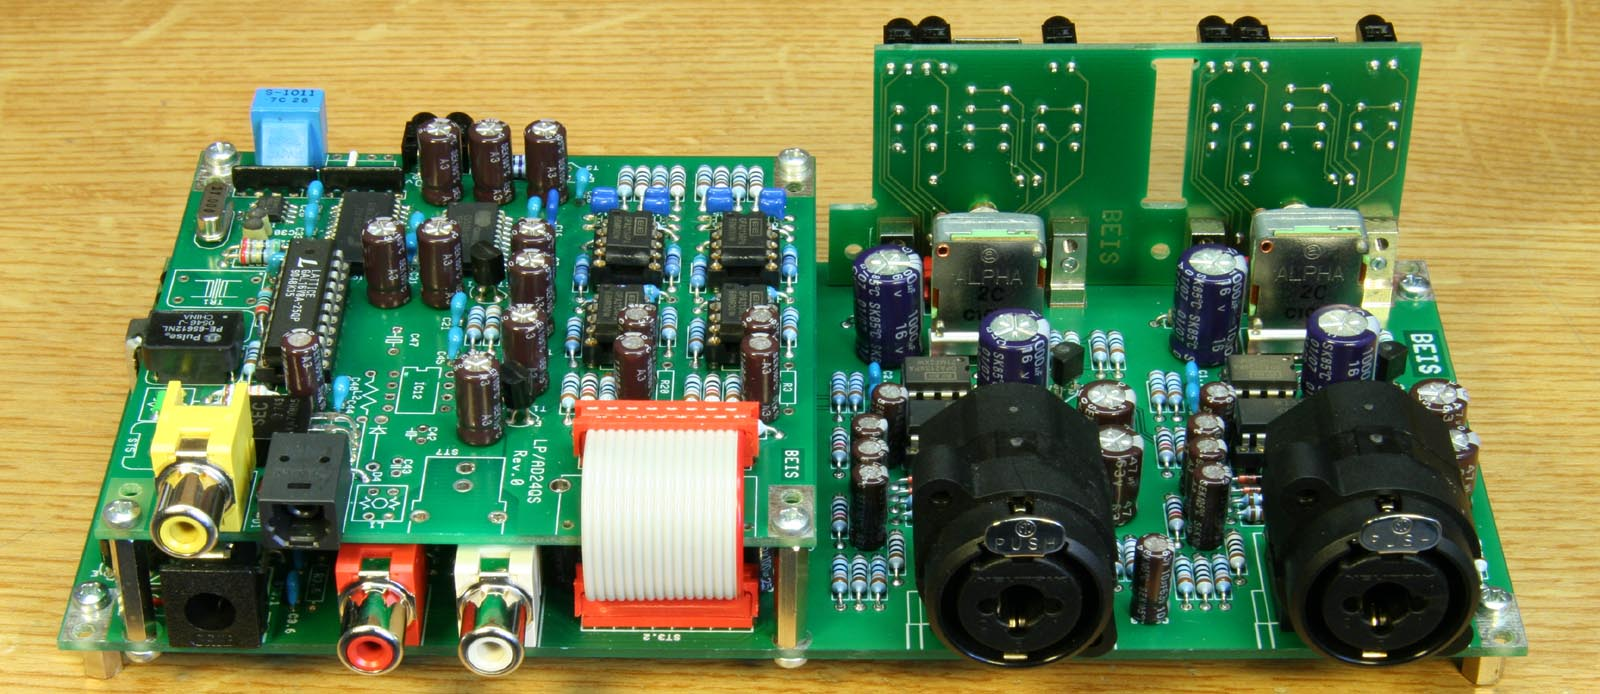 2chpre Dual Channel Preamplifier For A D Converter Ad24qs Stereo Noise Limiter Circuit Click To Enlarge